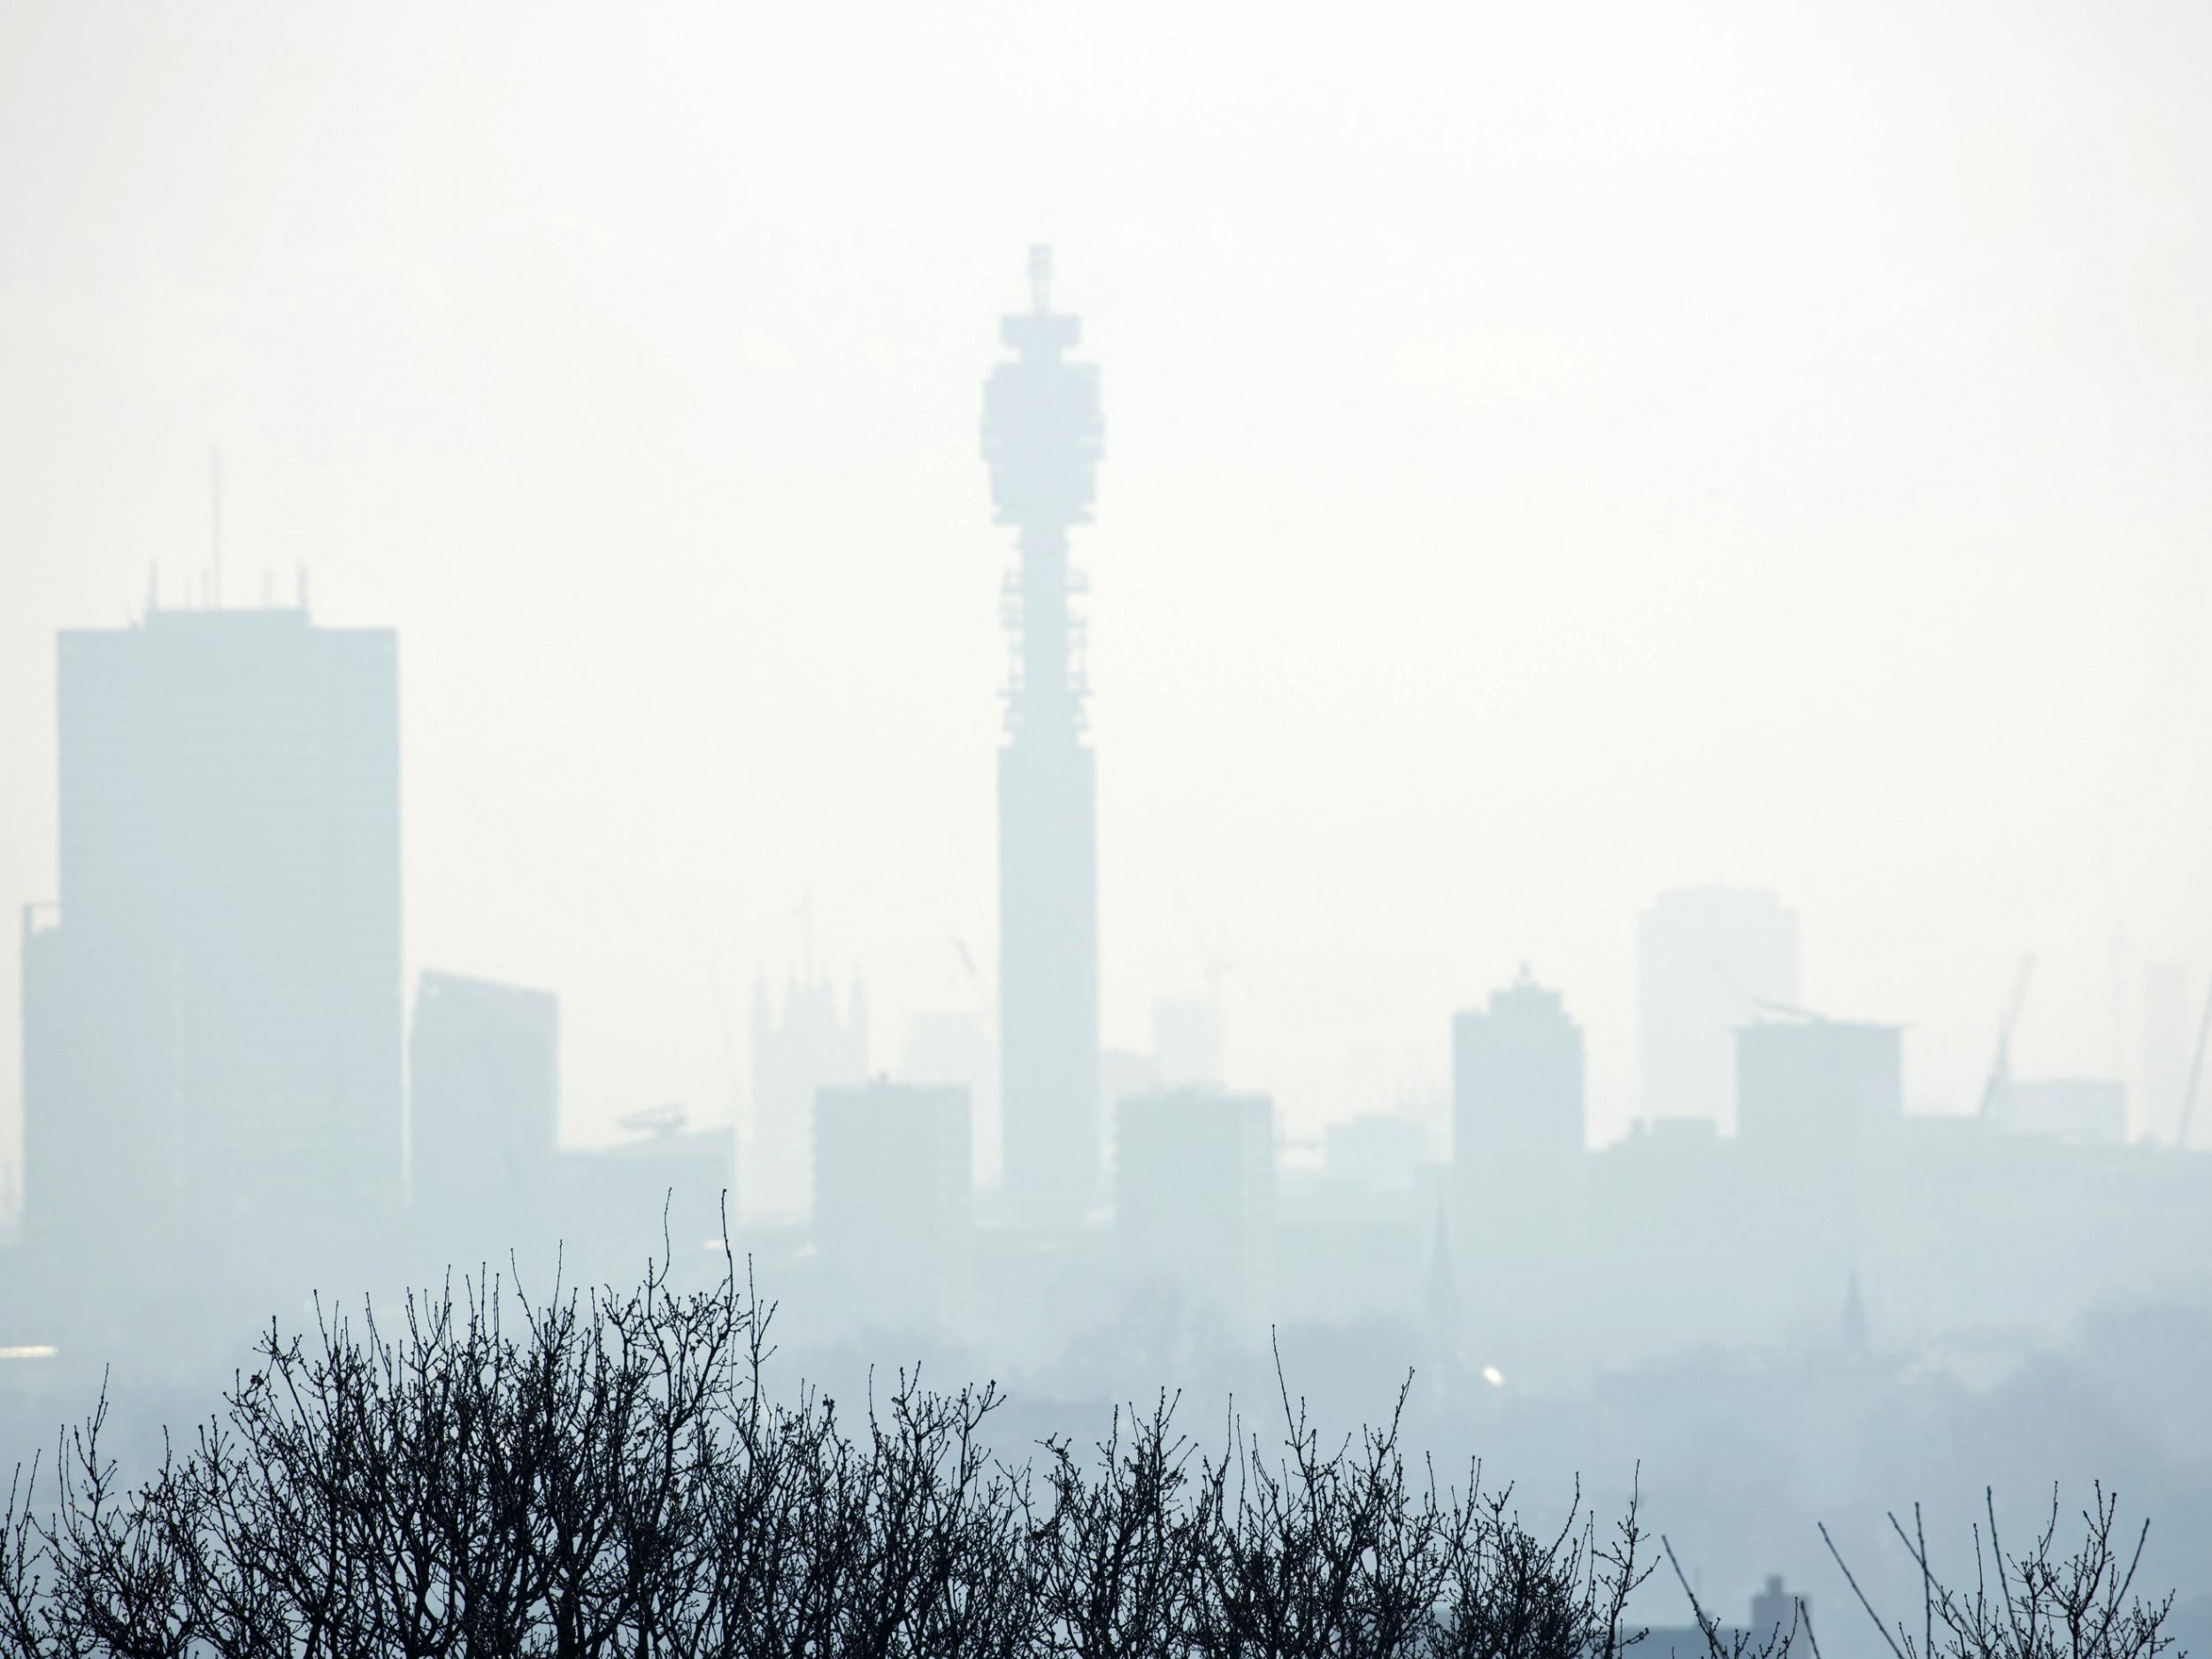 Businesses should foot the bill for the pollution they cause, says UN environment chief